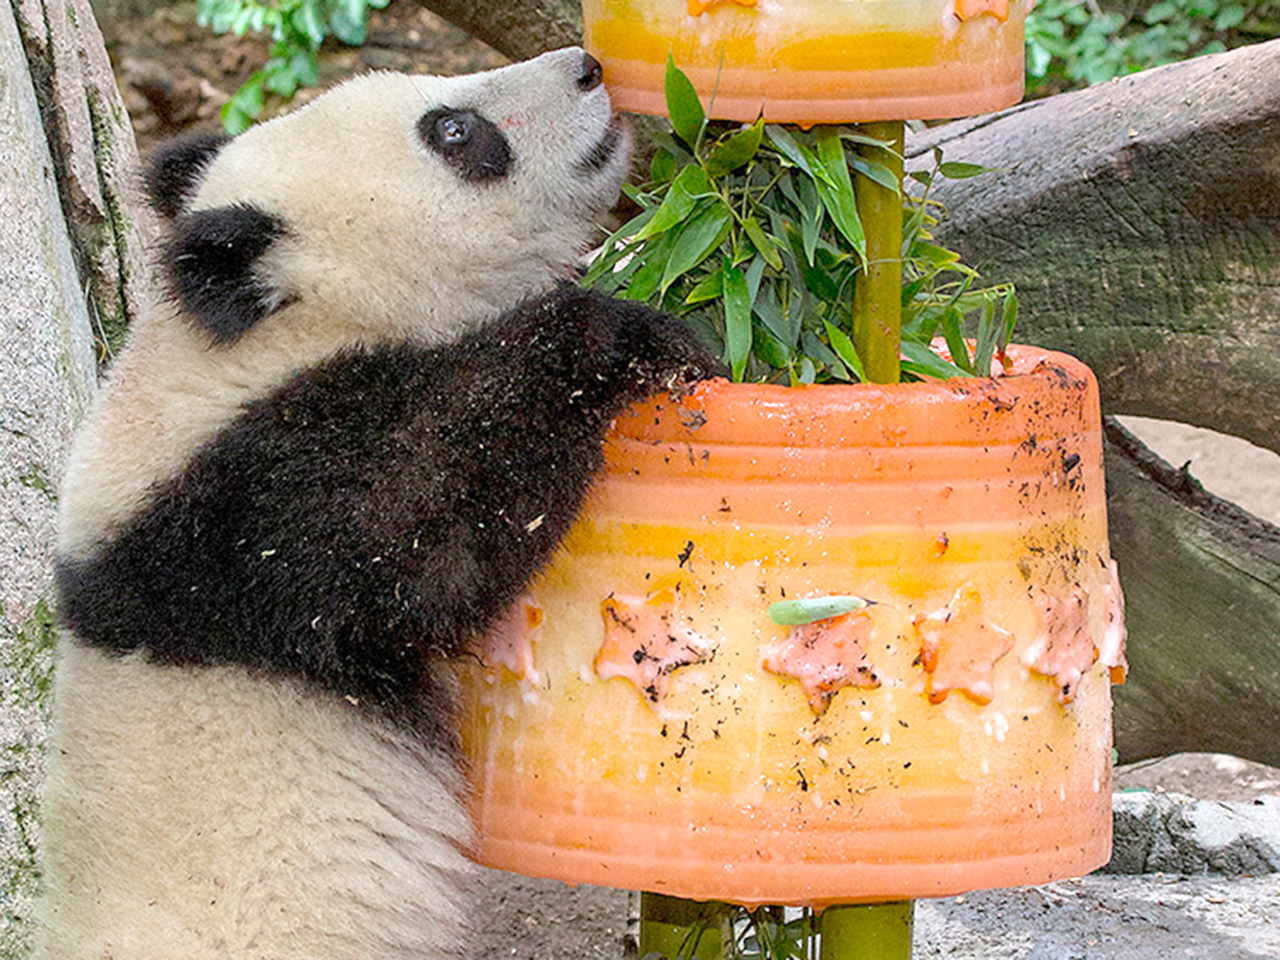 1 Year Old Panda Cub Gets 200 Lb Ice Cake For Birthday